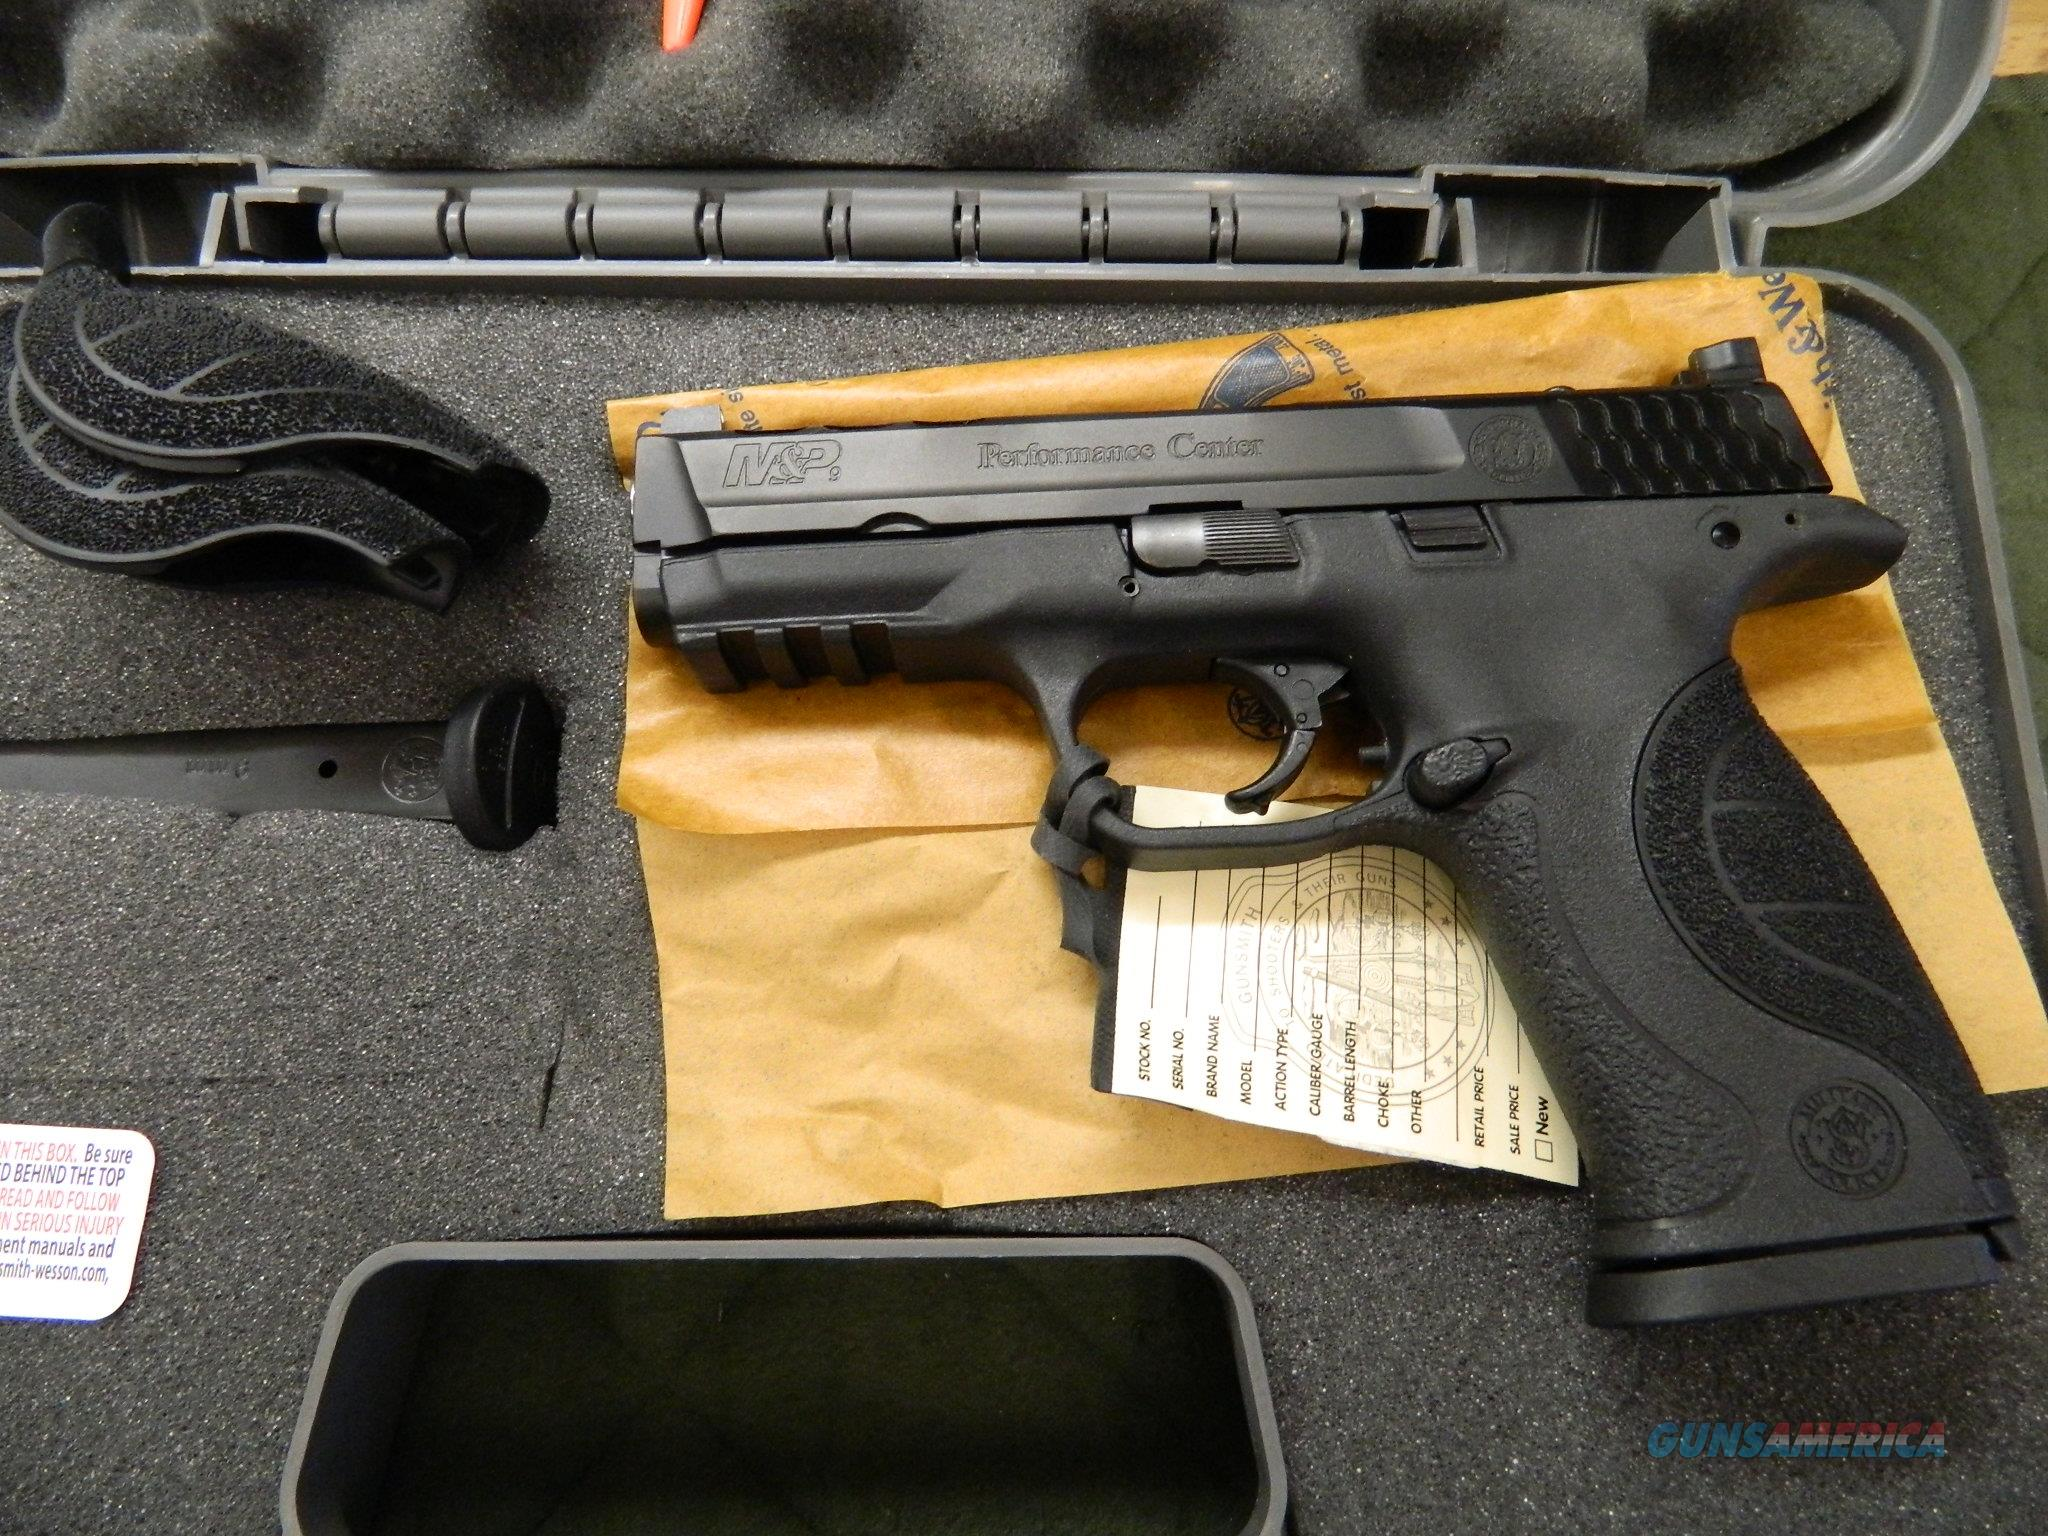 Smith & Wesson MP9 Performance Center C.O.R.E New in the Box  Guns > Pistols > Smith & Wesson Pistols - Autos > Polymer Frame